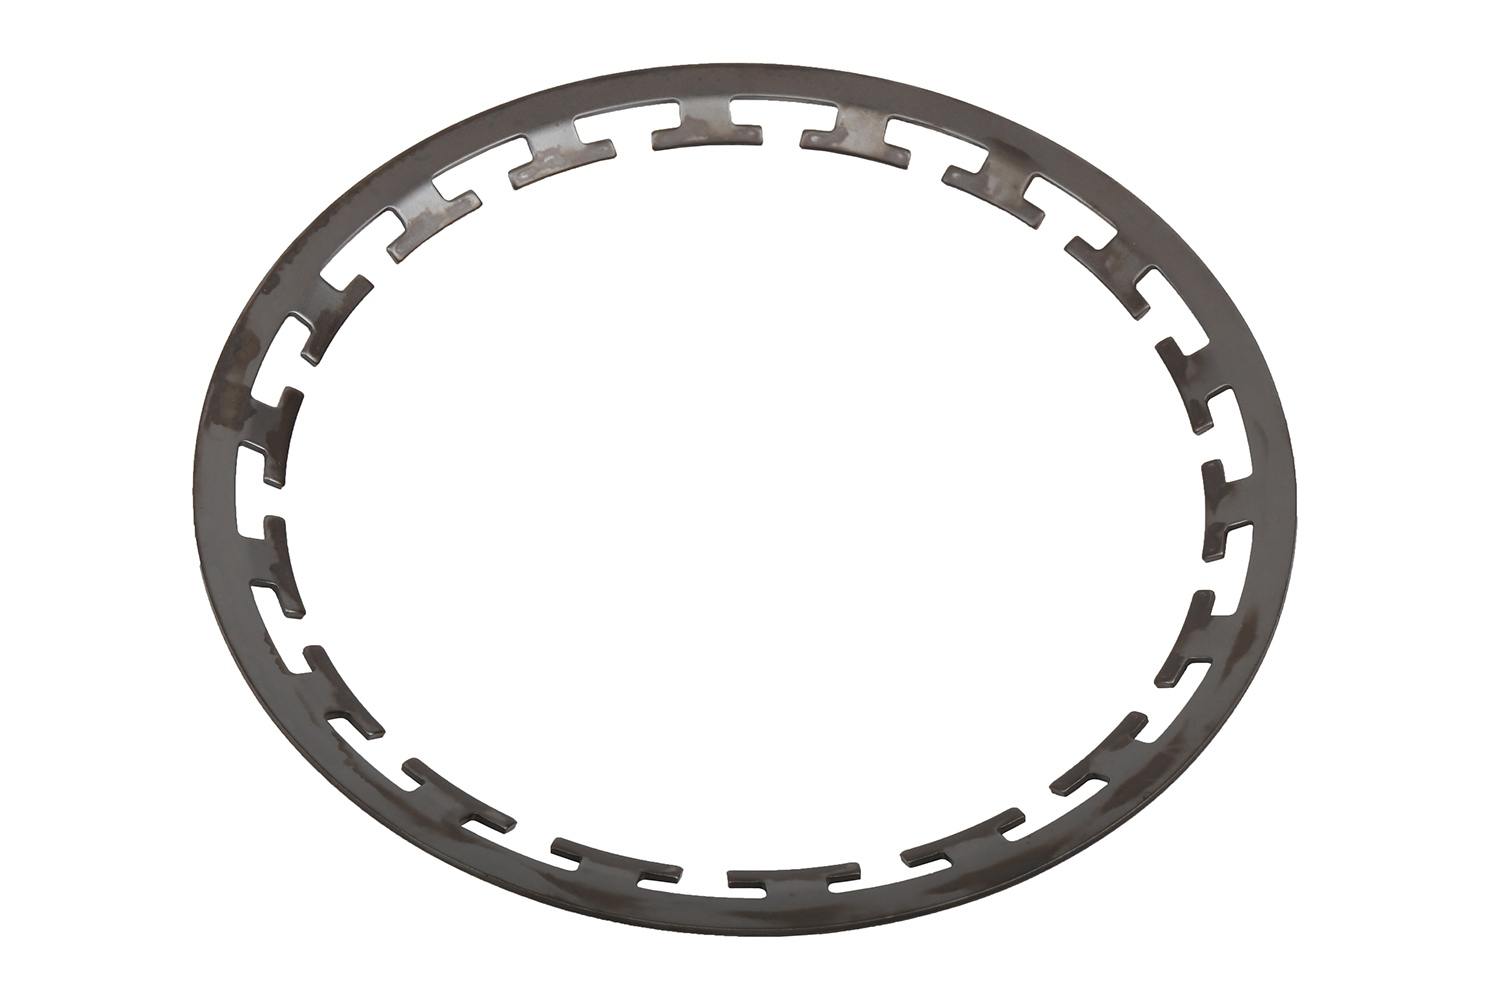 ACDELCO OE SERVICE - Low & Reverse Clutch Spring - DCB 24230814